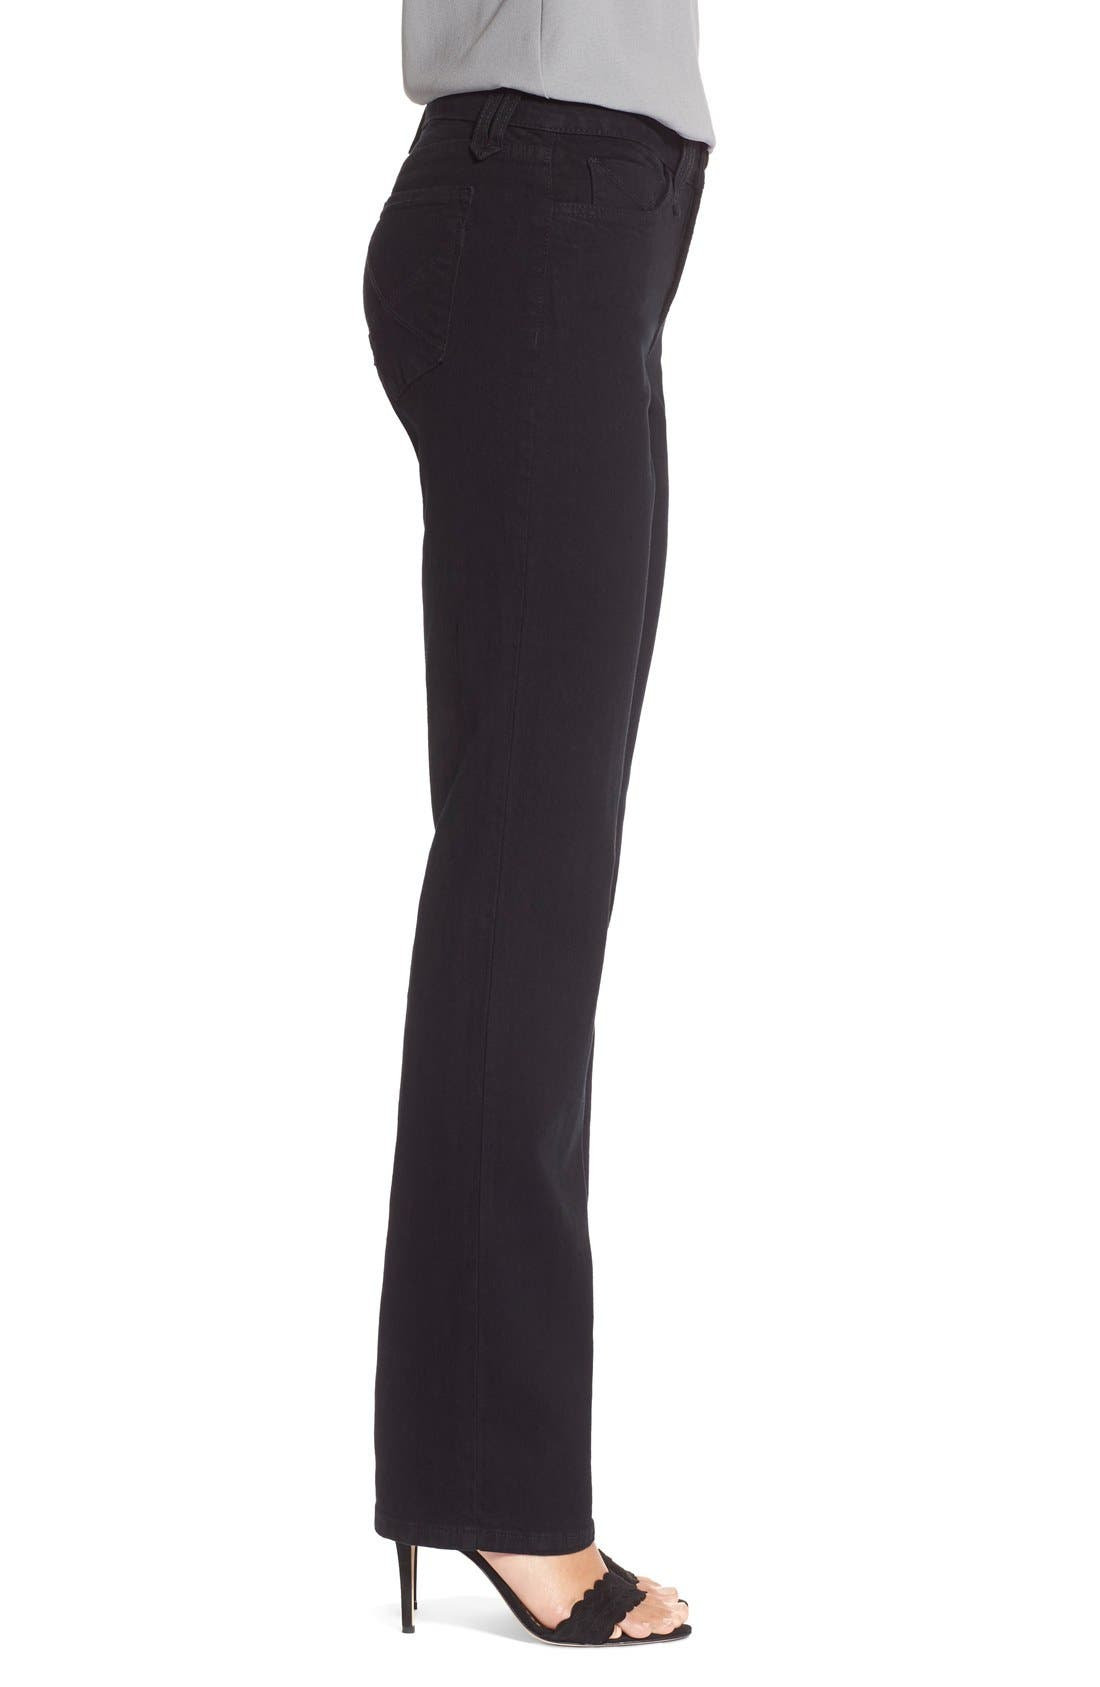 Alternate Image 3  - NYDJ 'Marilyn' Stretch Straight Leg Jeans (Regular & Petite)